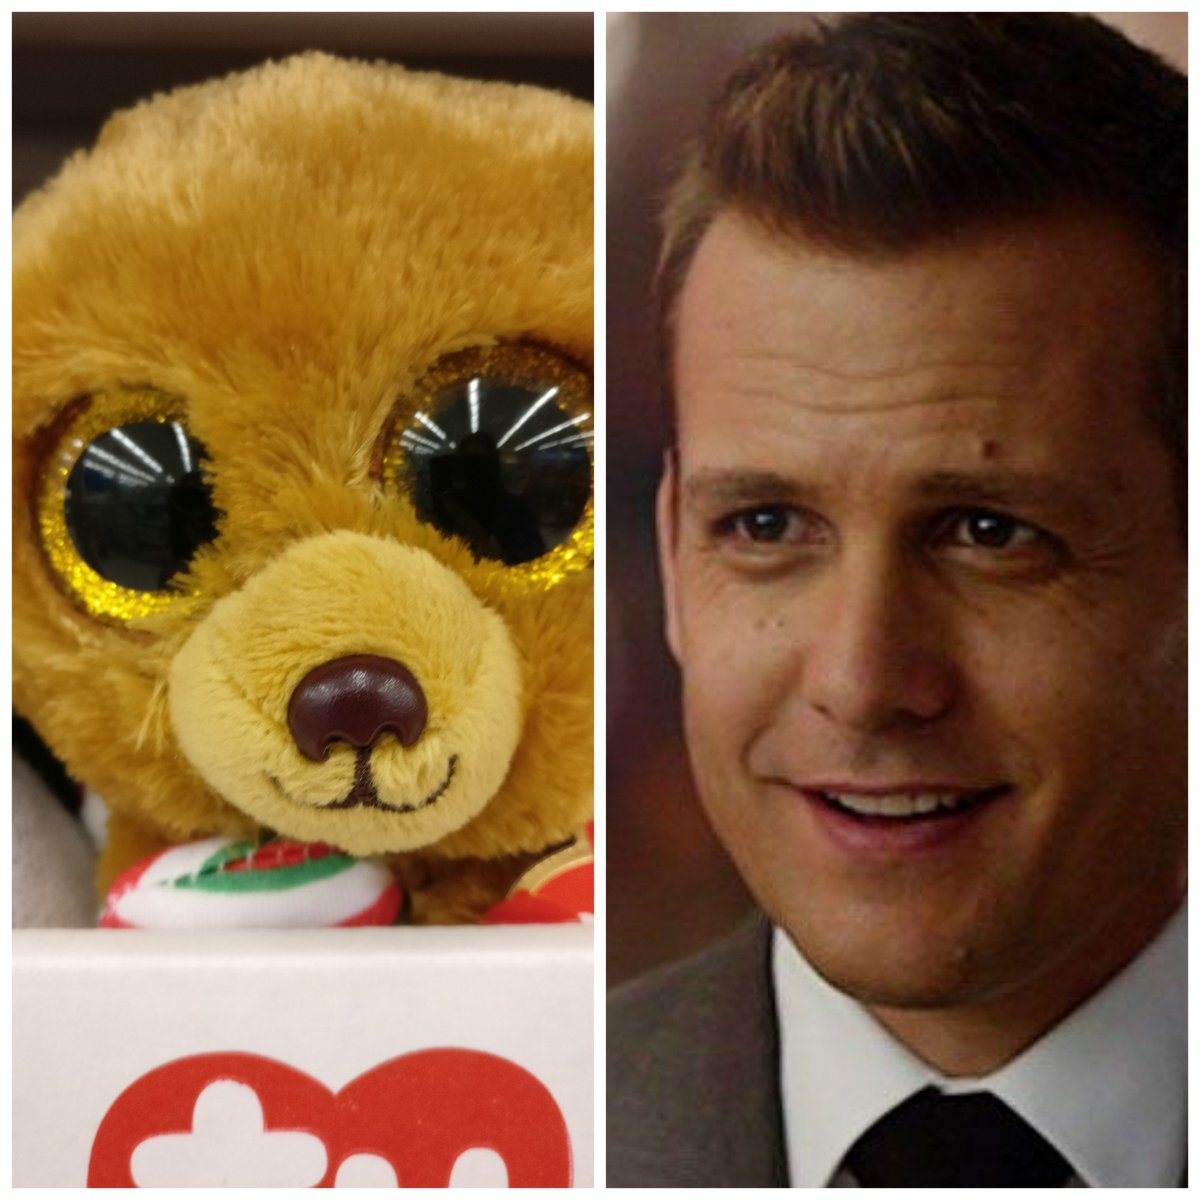 I saw a #HarveySpecter plushie at the store. I&#39;m shook. The eyes, the smile... Samesies! Happy Monday  <br>http://pic.twitter.com/5t2tRS88GH